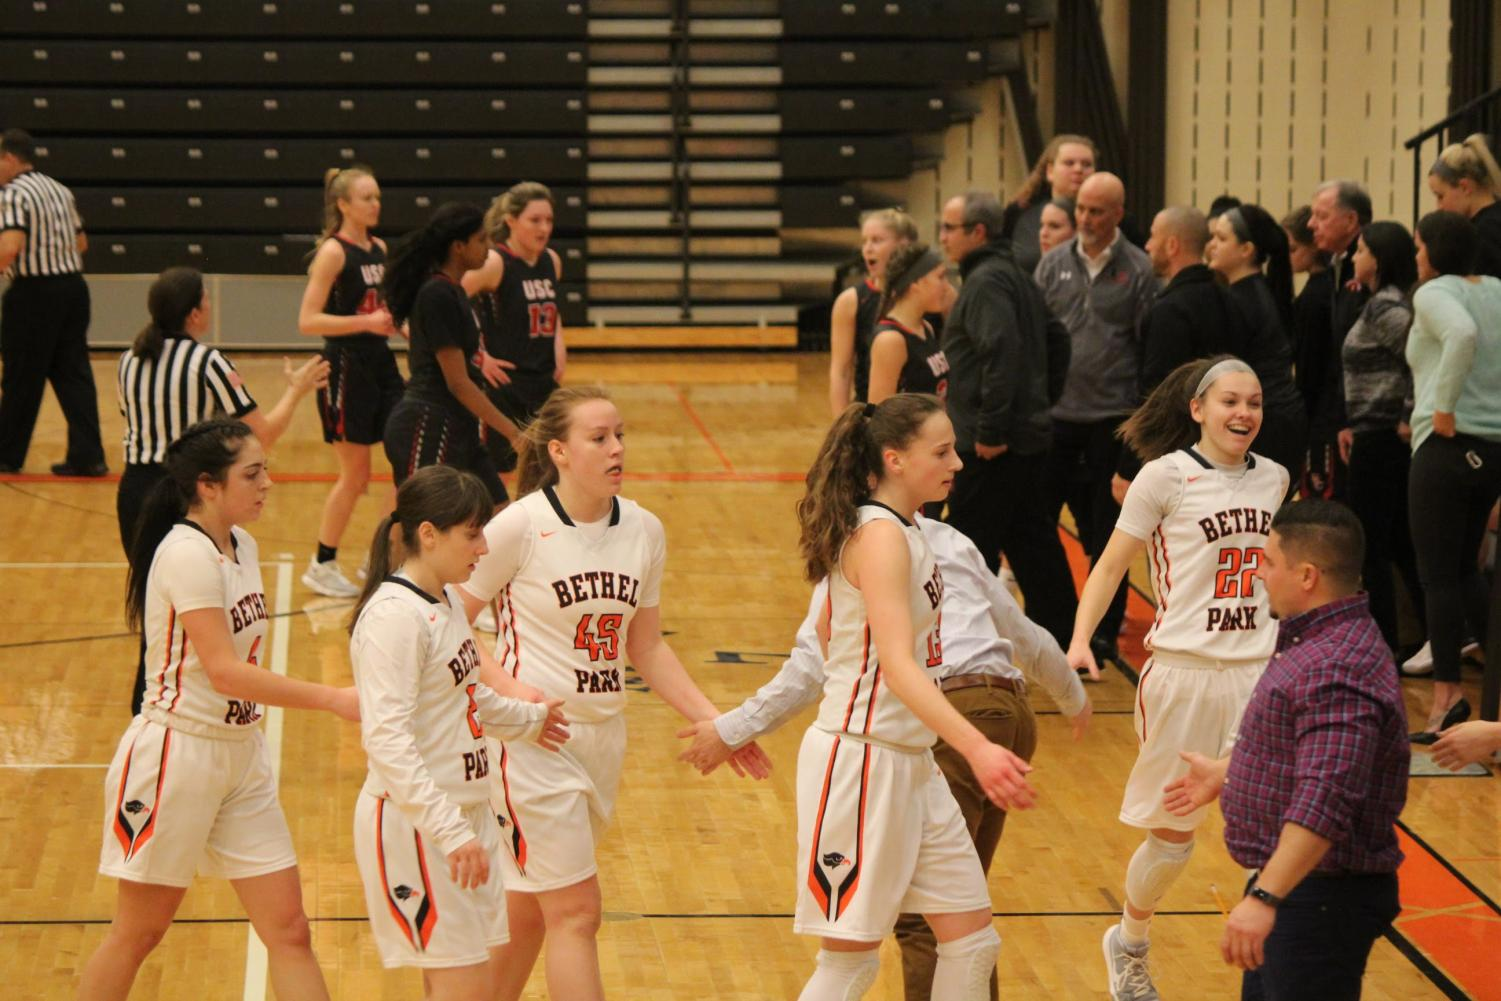 The Lady Hawks slap hands with their coaches during their game against USC on Thursday, Jan. 25.